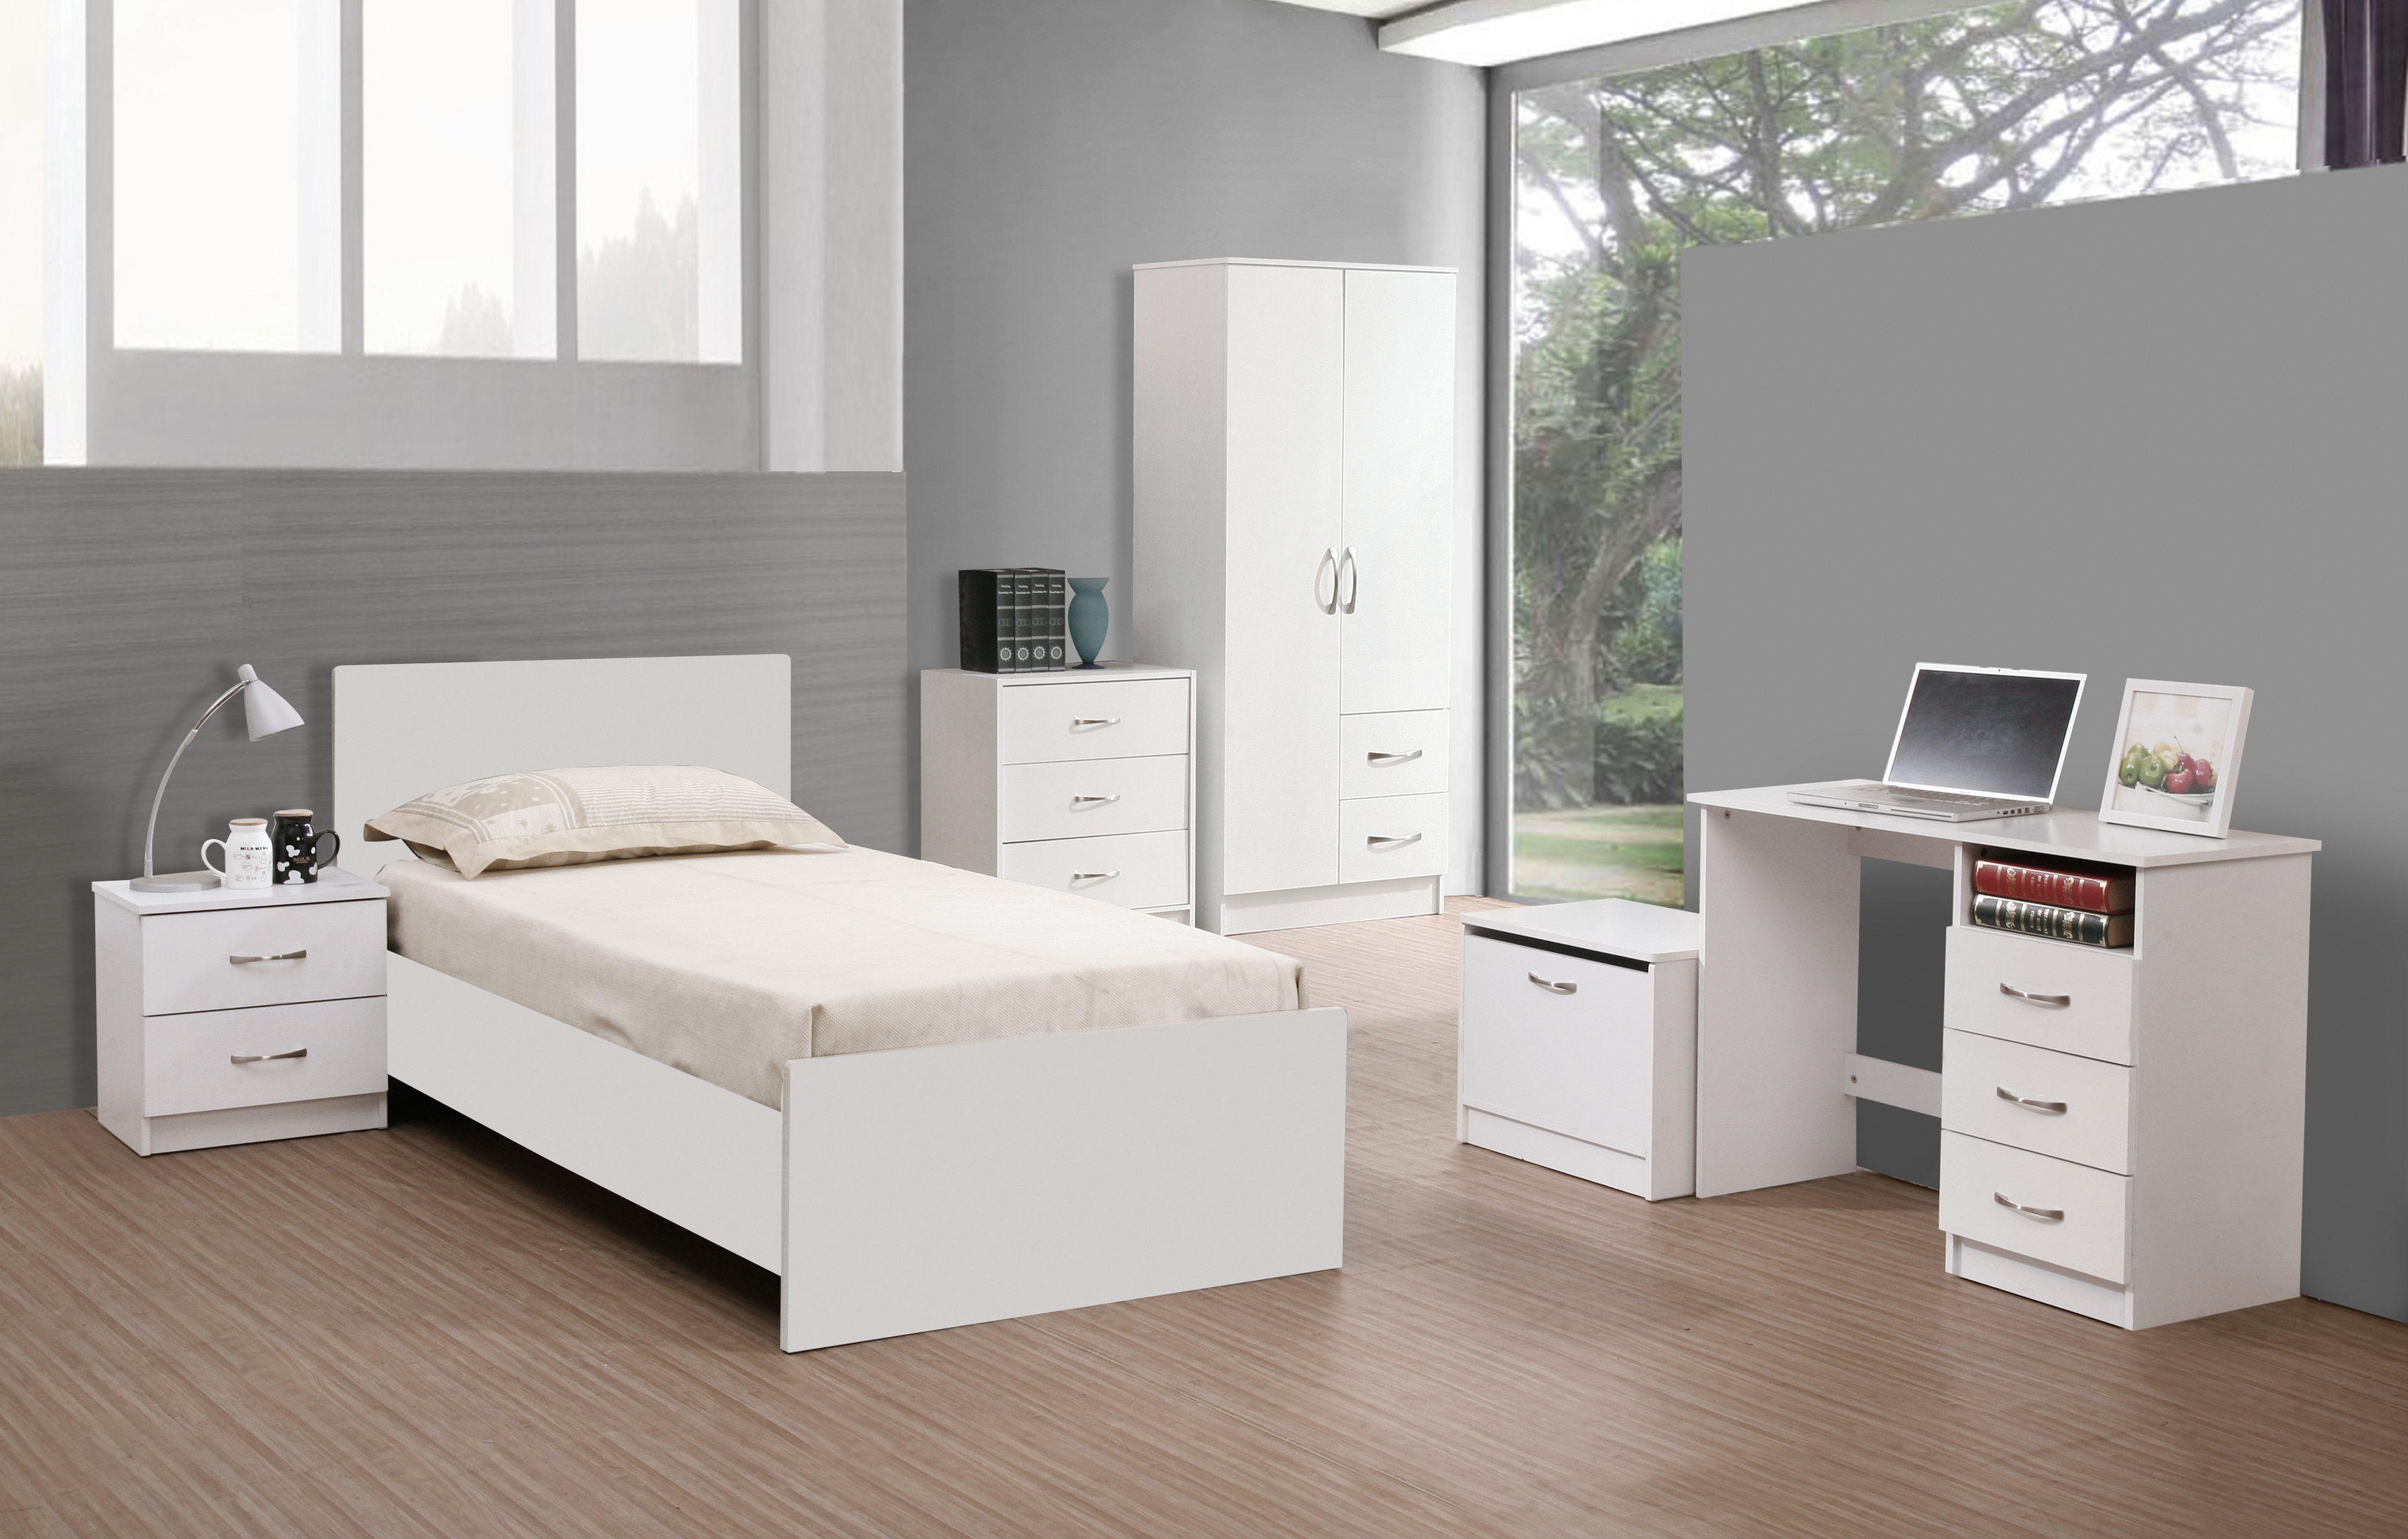 view in gallery white cottage bedroom furniture set design in inspiration likable decorating ideas minimalist with solid wood single